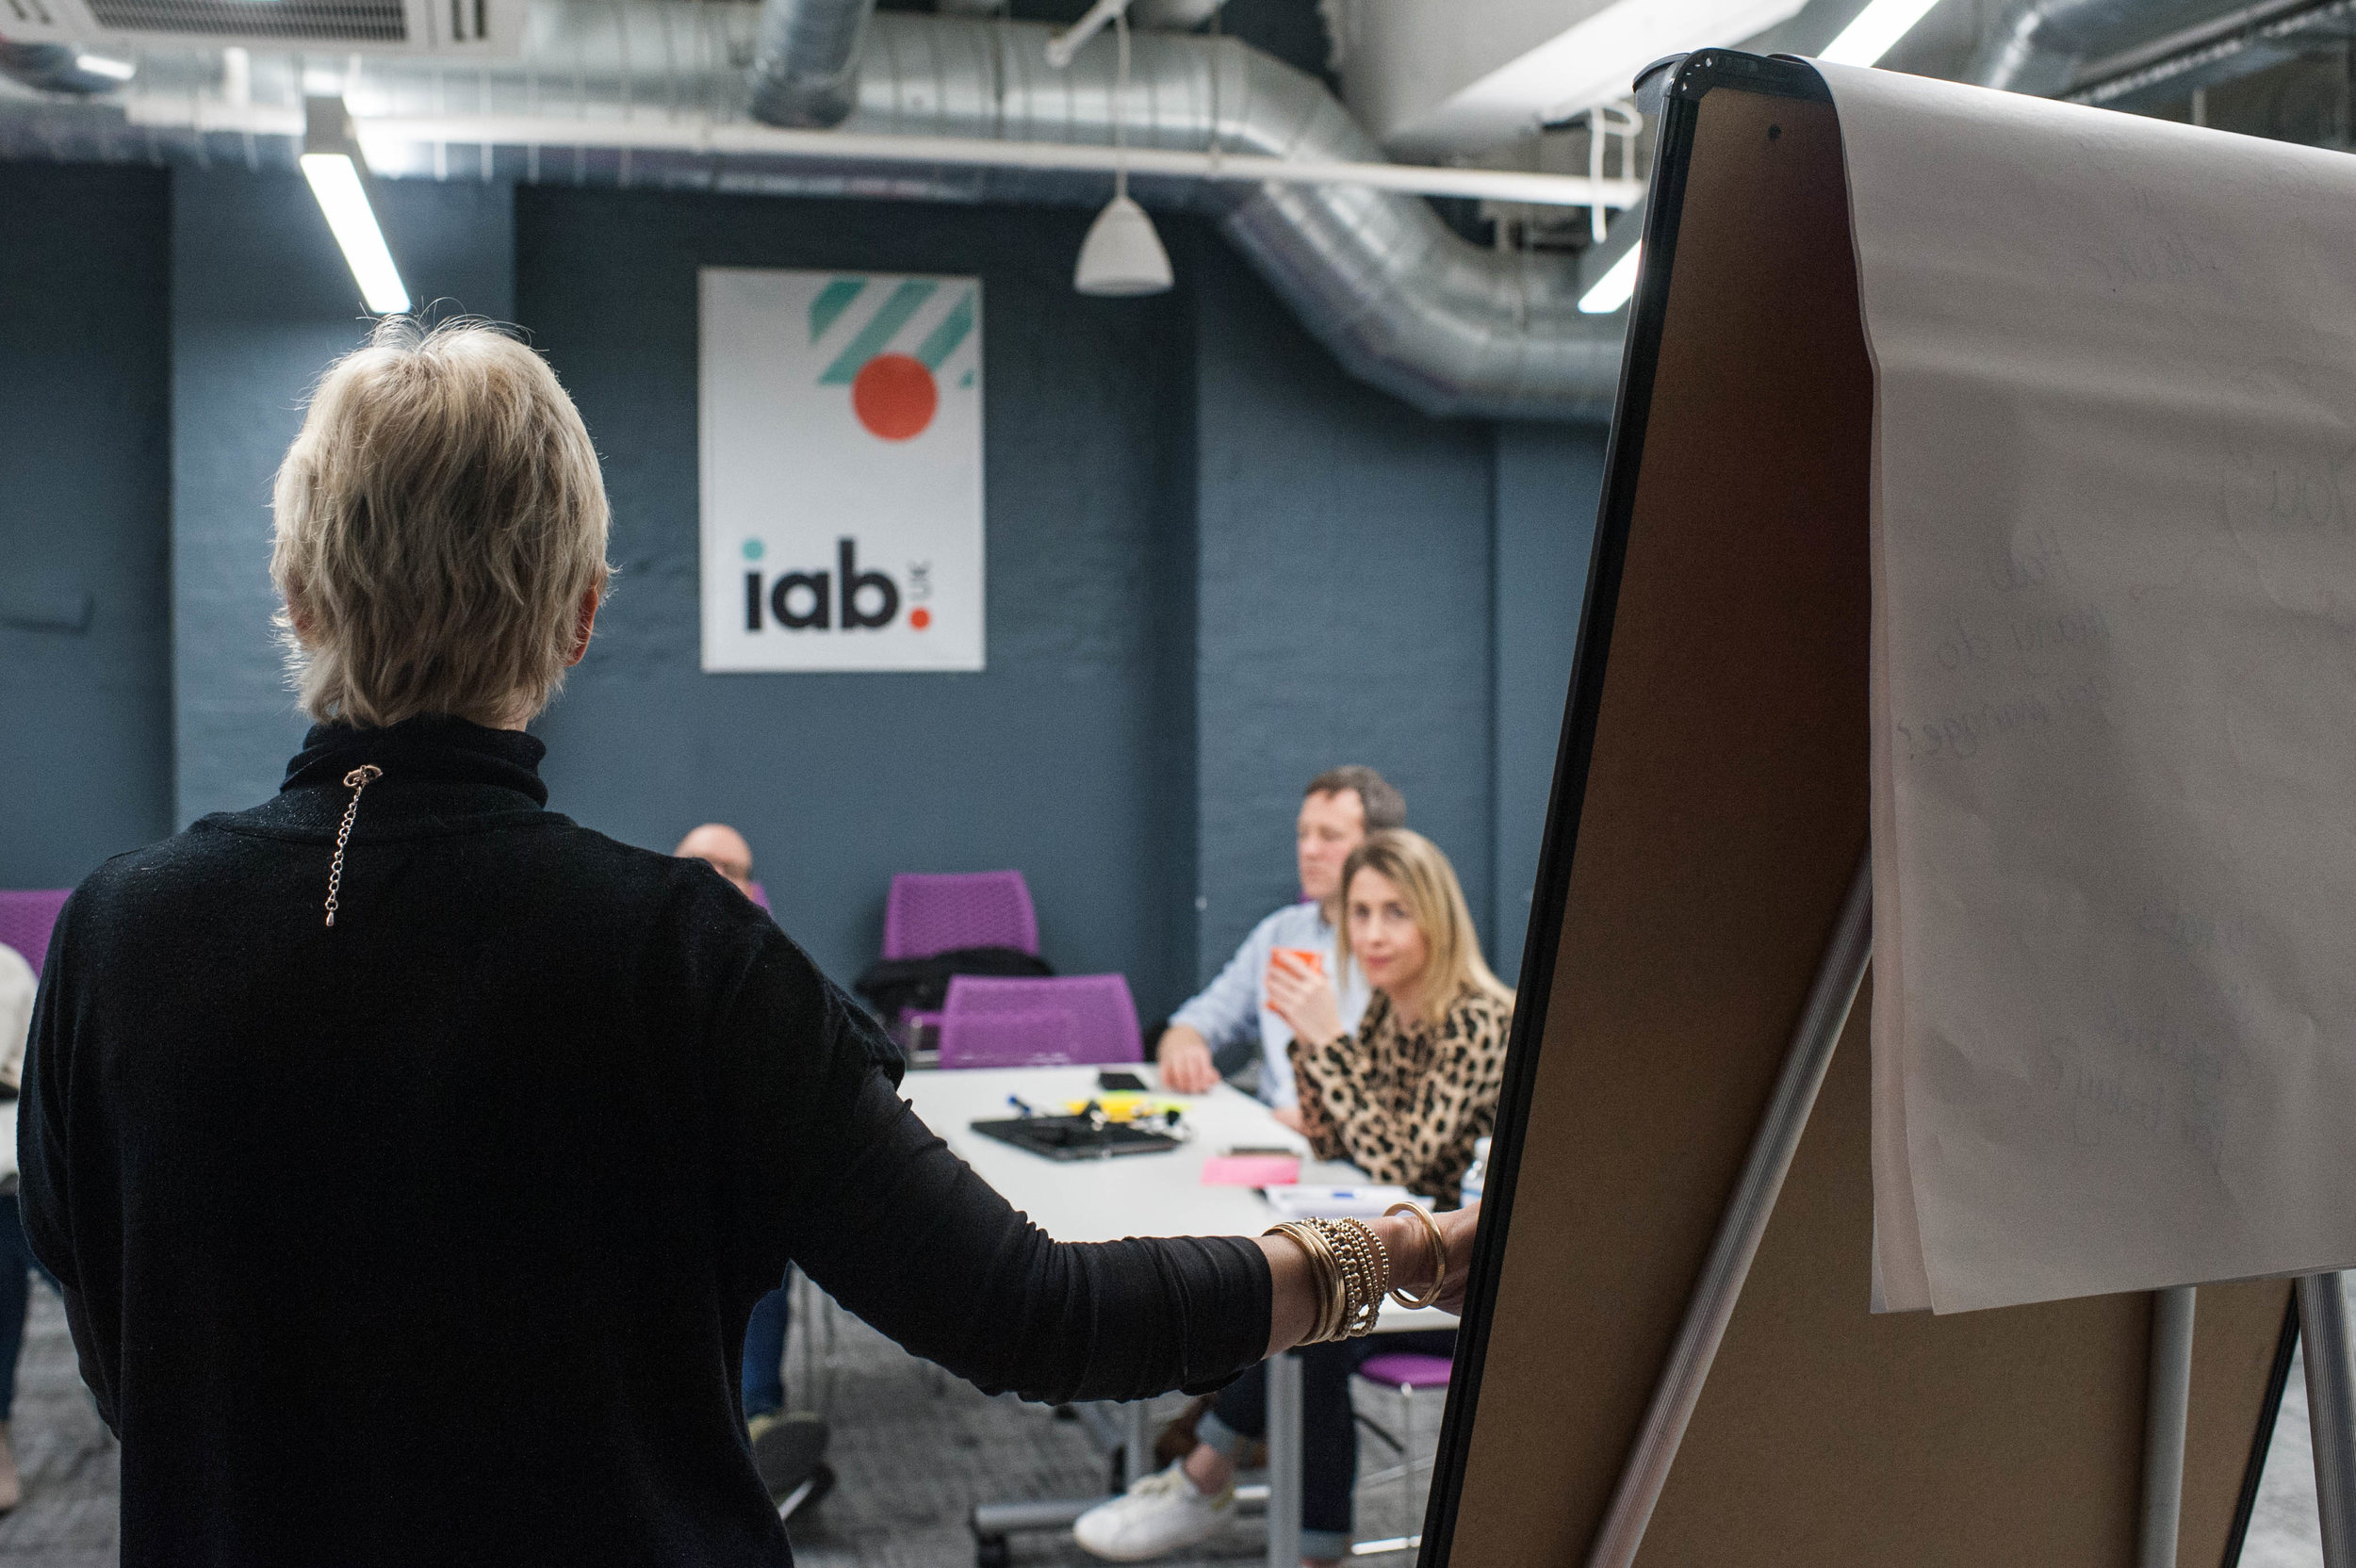 IAB Uk_Incidental Shots_SM (167 of 312).jpg